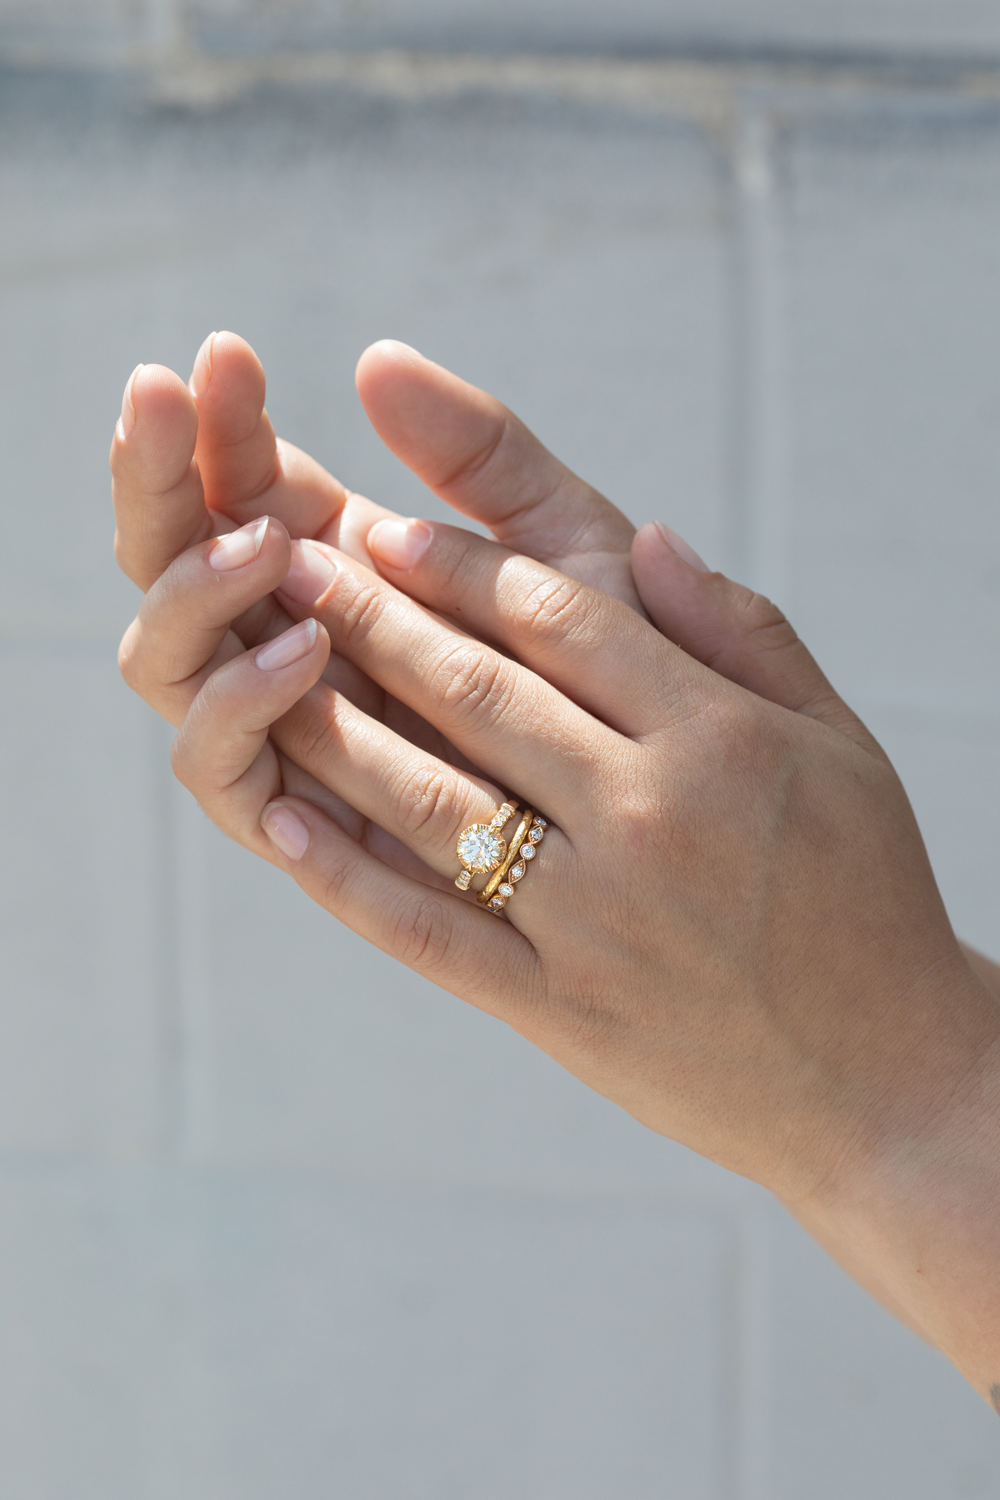 Ethically Sourced Diamond Engagement Rings + Wedding Bands